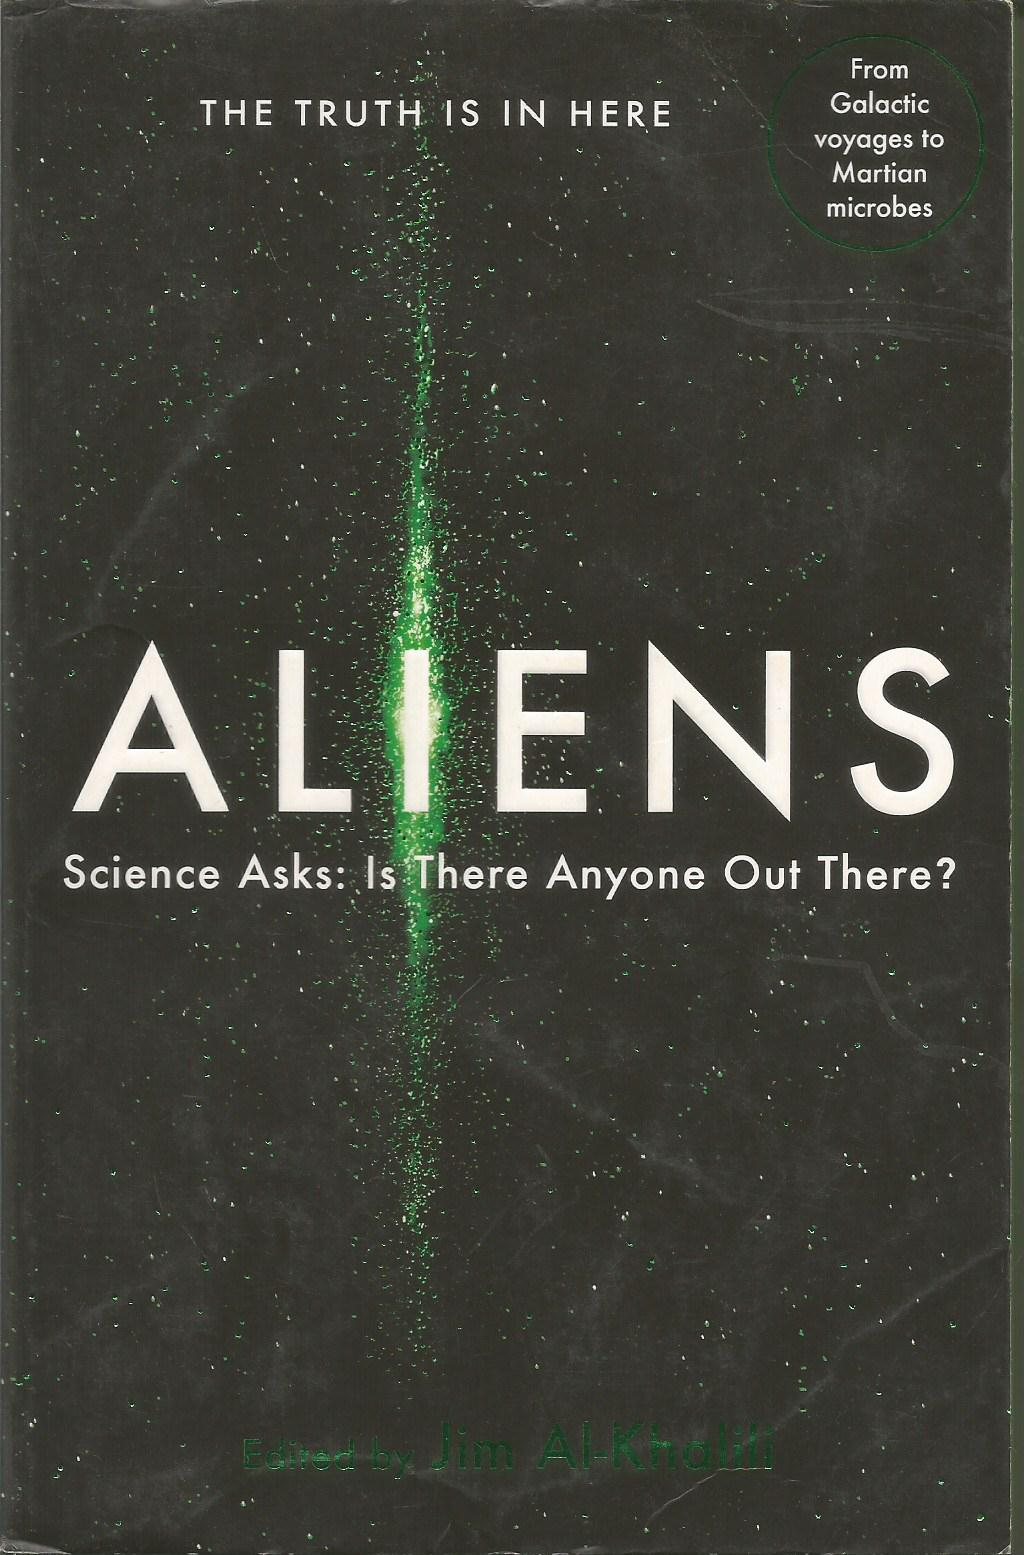 Aliens: Science Asks: Is There Anyone Out There?: Science from the Other Side